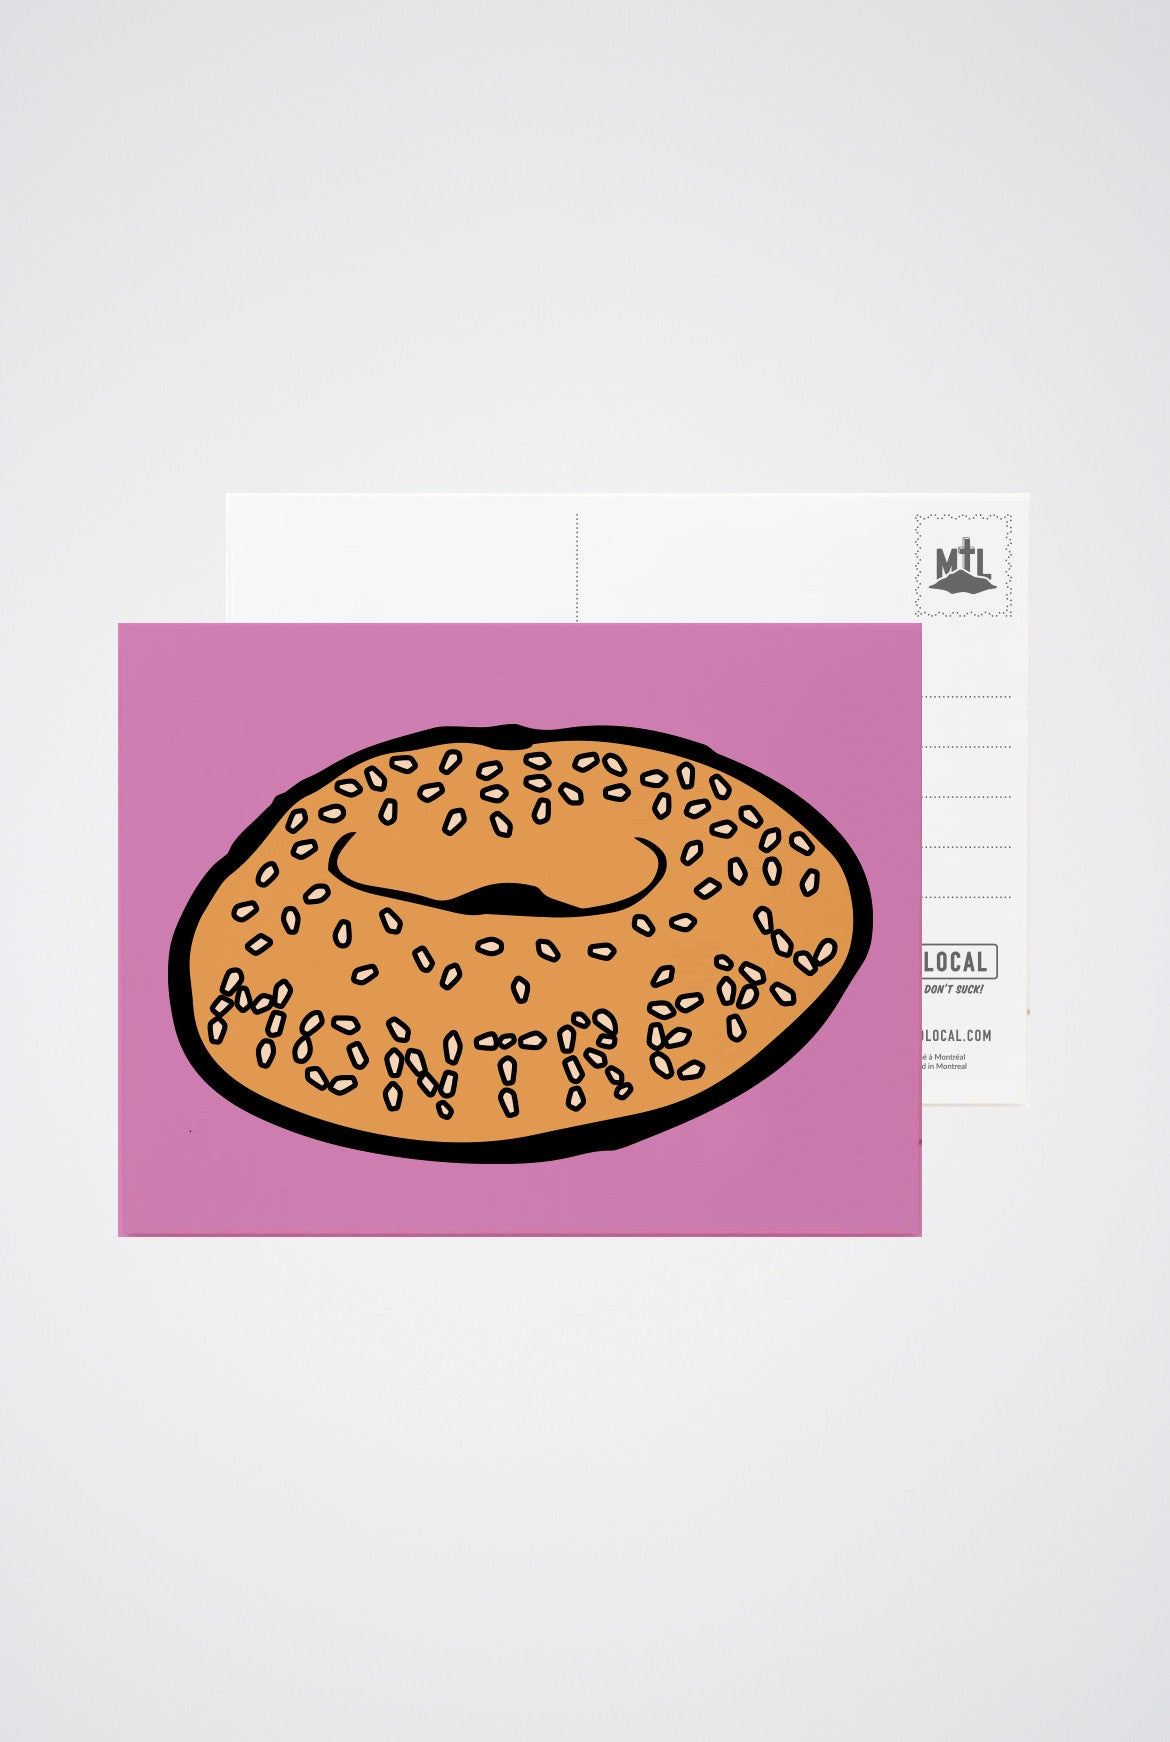 Montreal Bagel Post Card - Main and Local